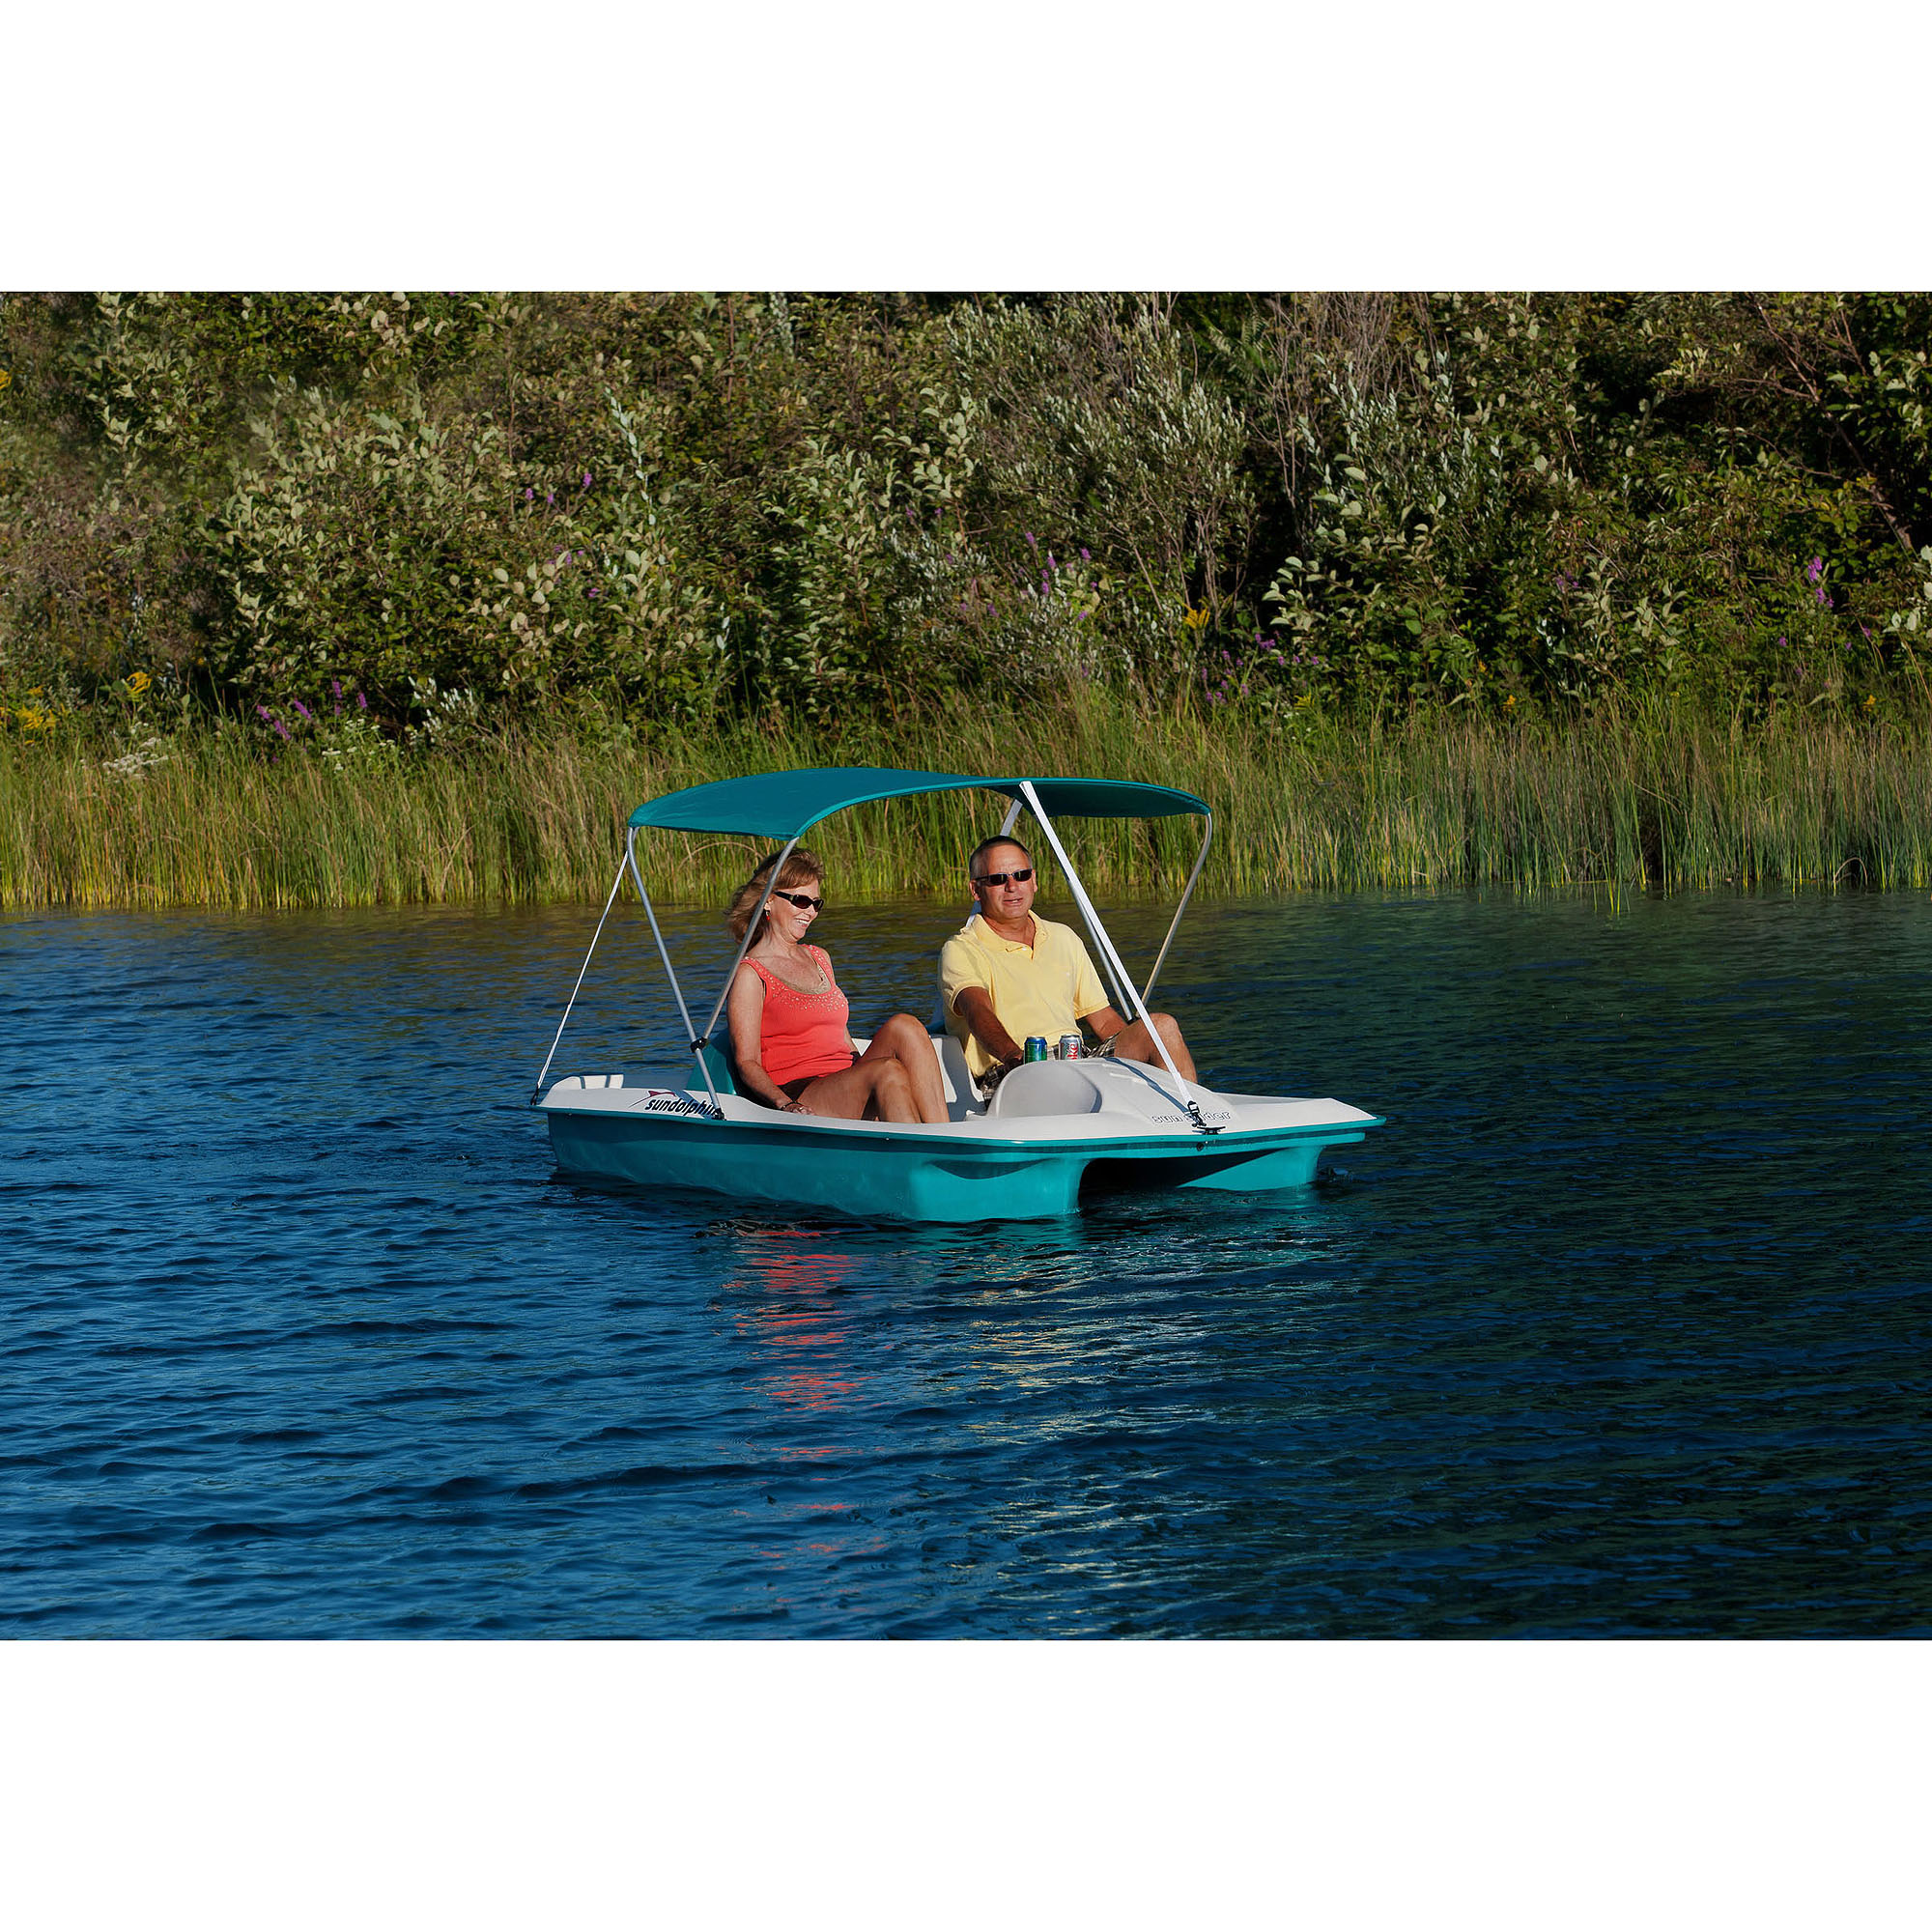 Sun dolphin 5 person sun slider pedal boat with canopy ebay for Sun dolphin fishing boat